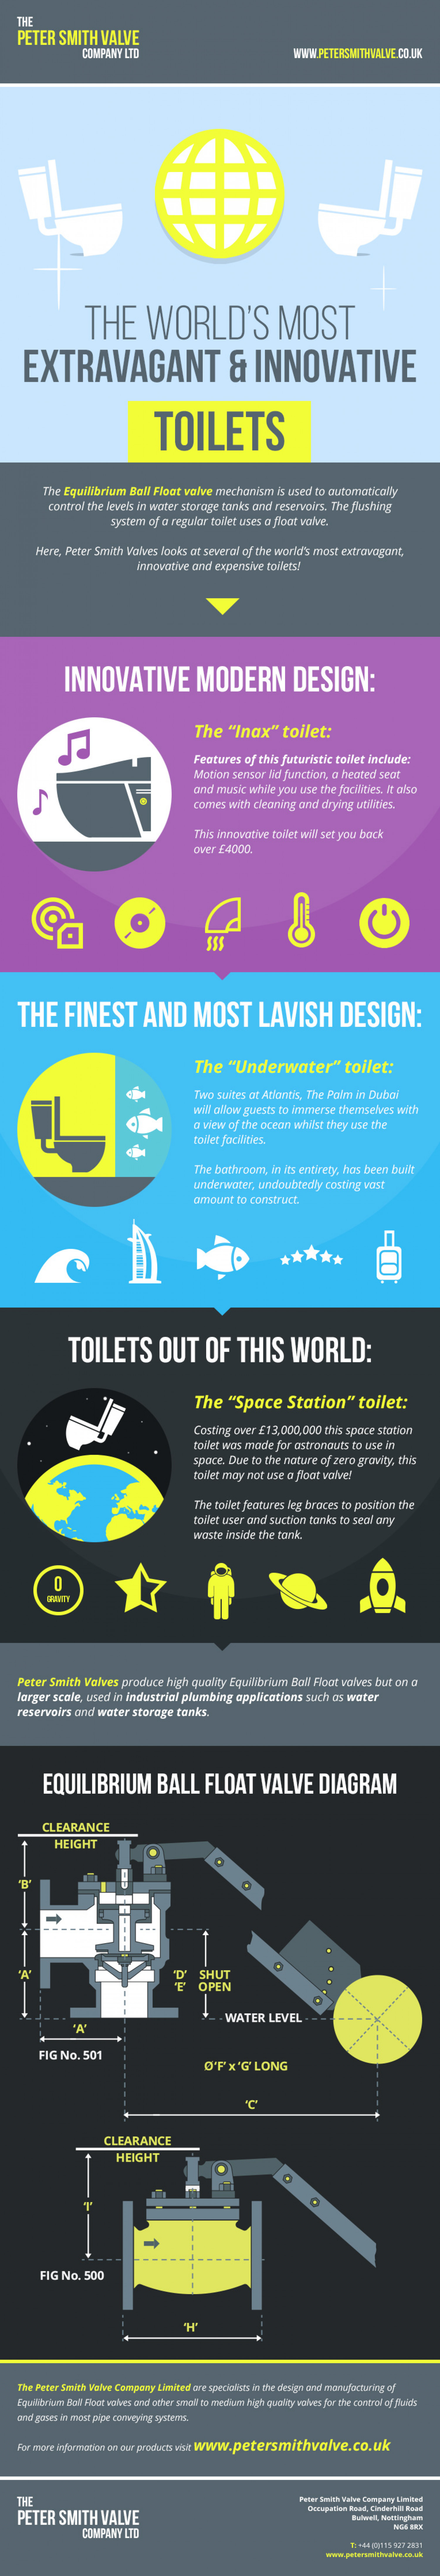 The World's Most Extravagant & Innovative Toilets Infographic